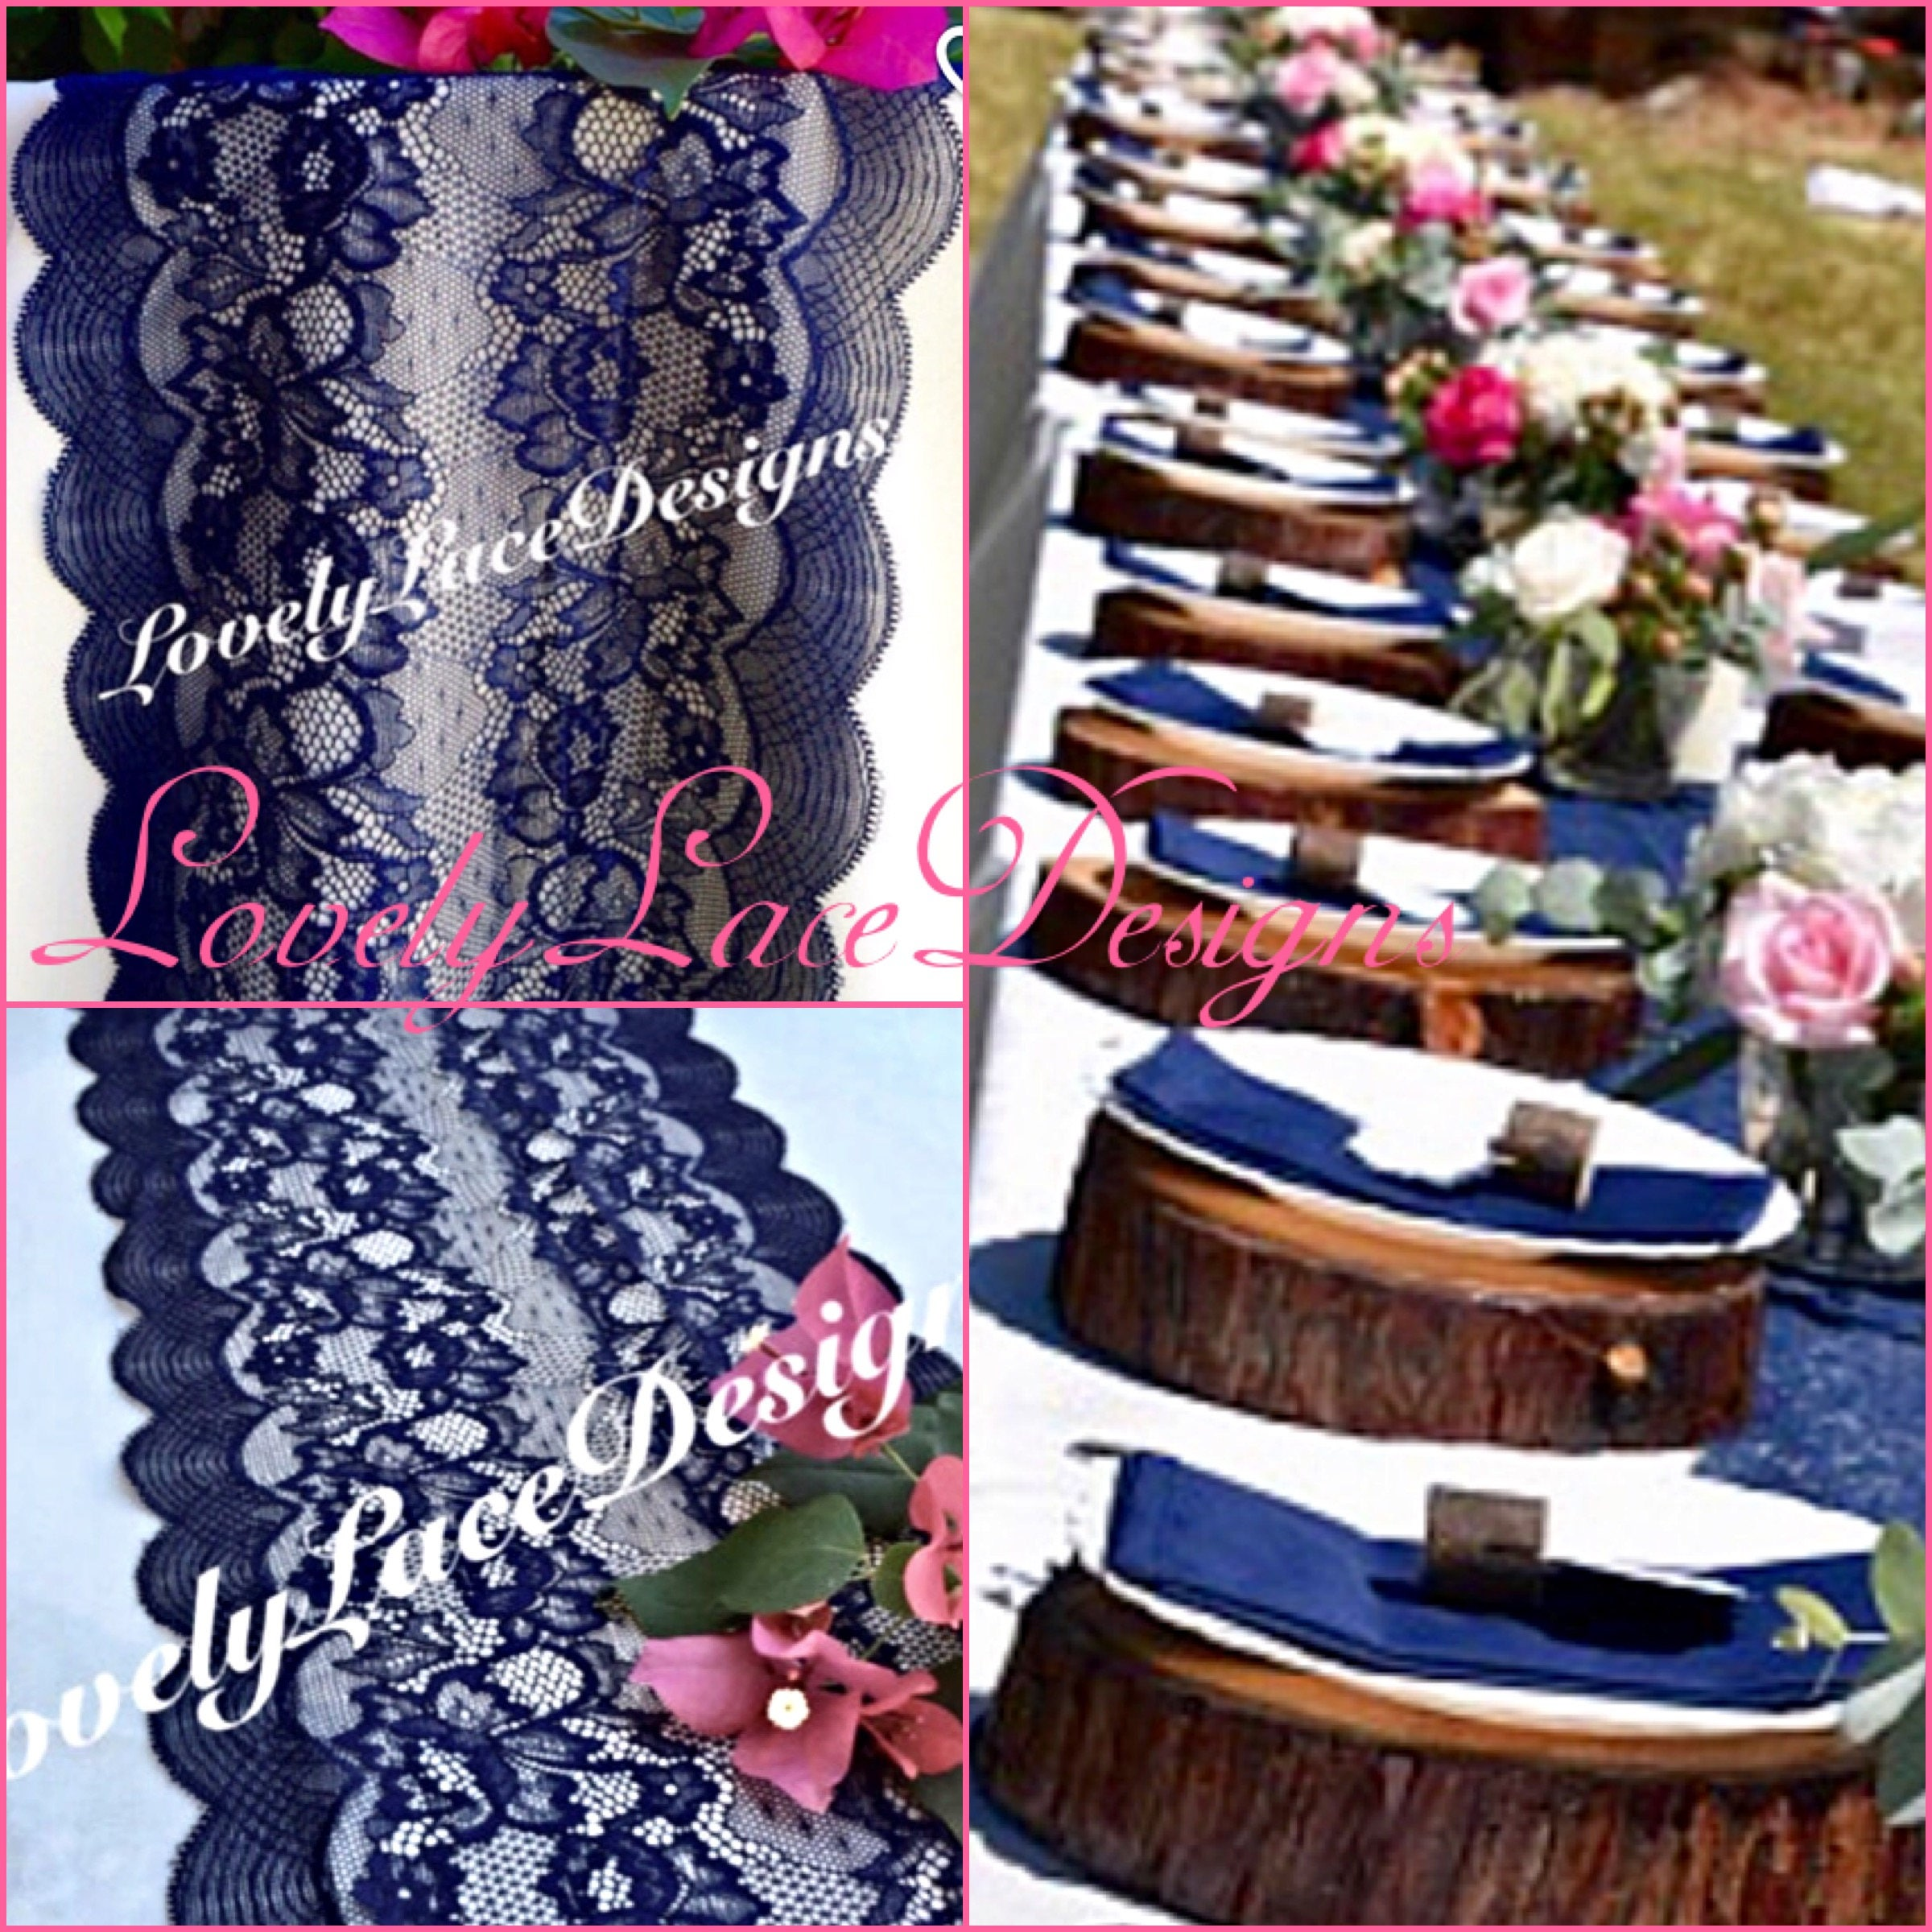 NAVY Weddings/ Navy Blue Lace Table Runner/Wedding Decor/ 3ft 10ft Long X  9wide/ Tabletop Decor/overlay/Centerpiece/Navy Decor/FREE Runner